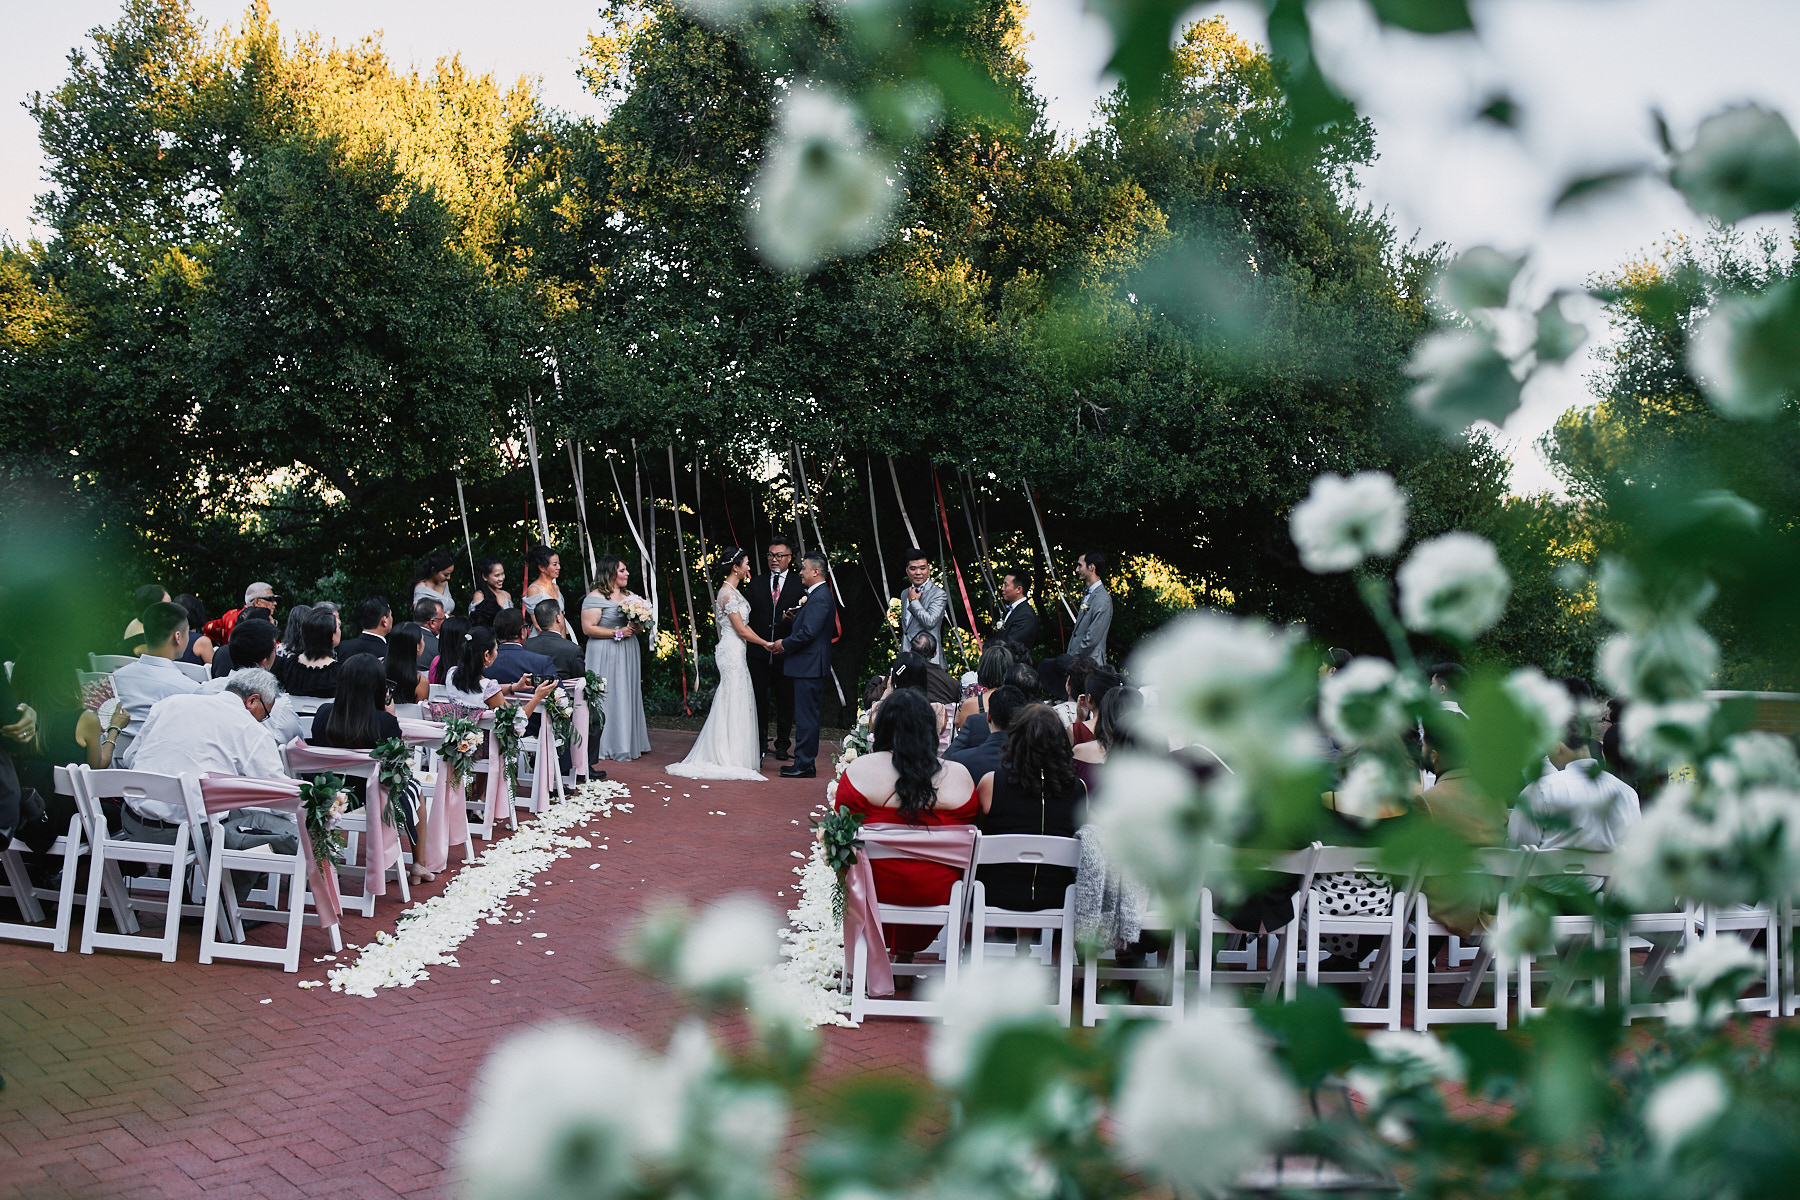 Quail Ranch wedding ceremony